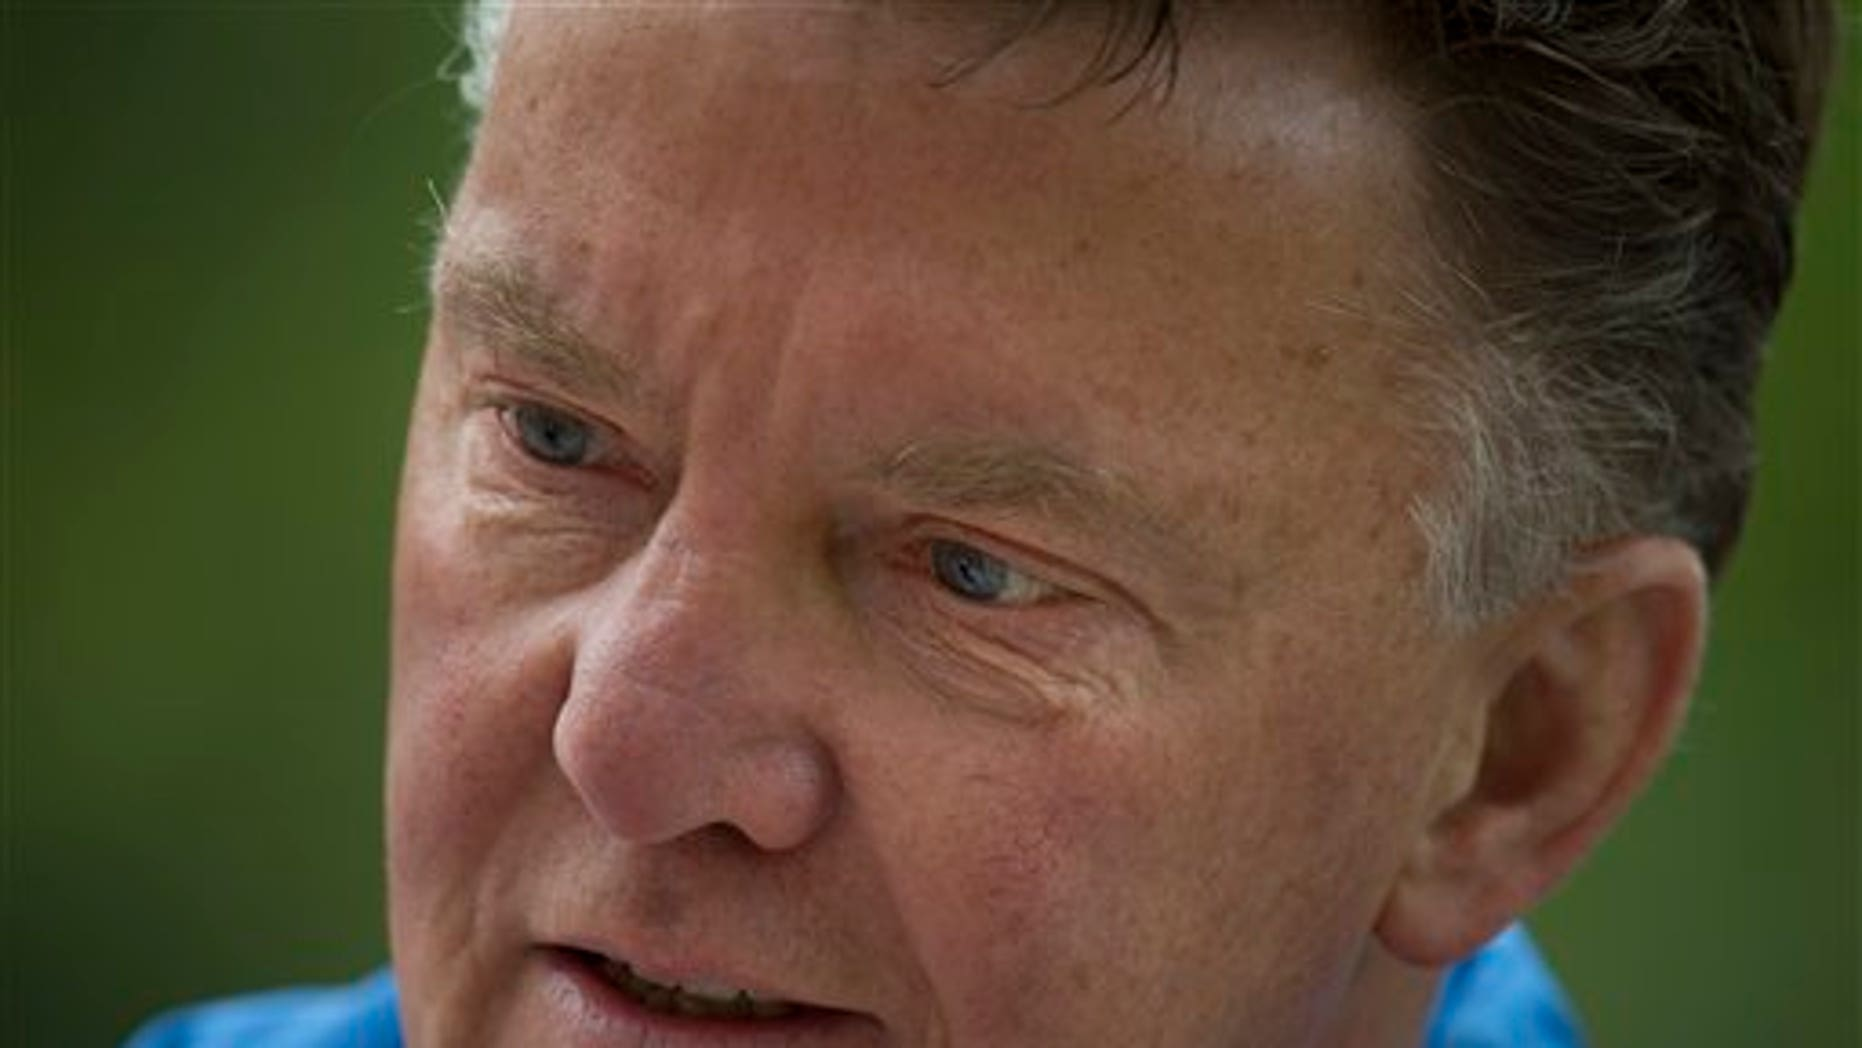 Louis van Gaal, coach of the Dutch national soccer team.